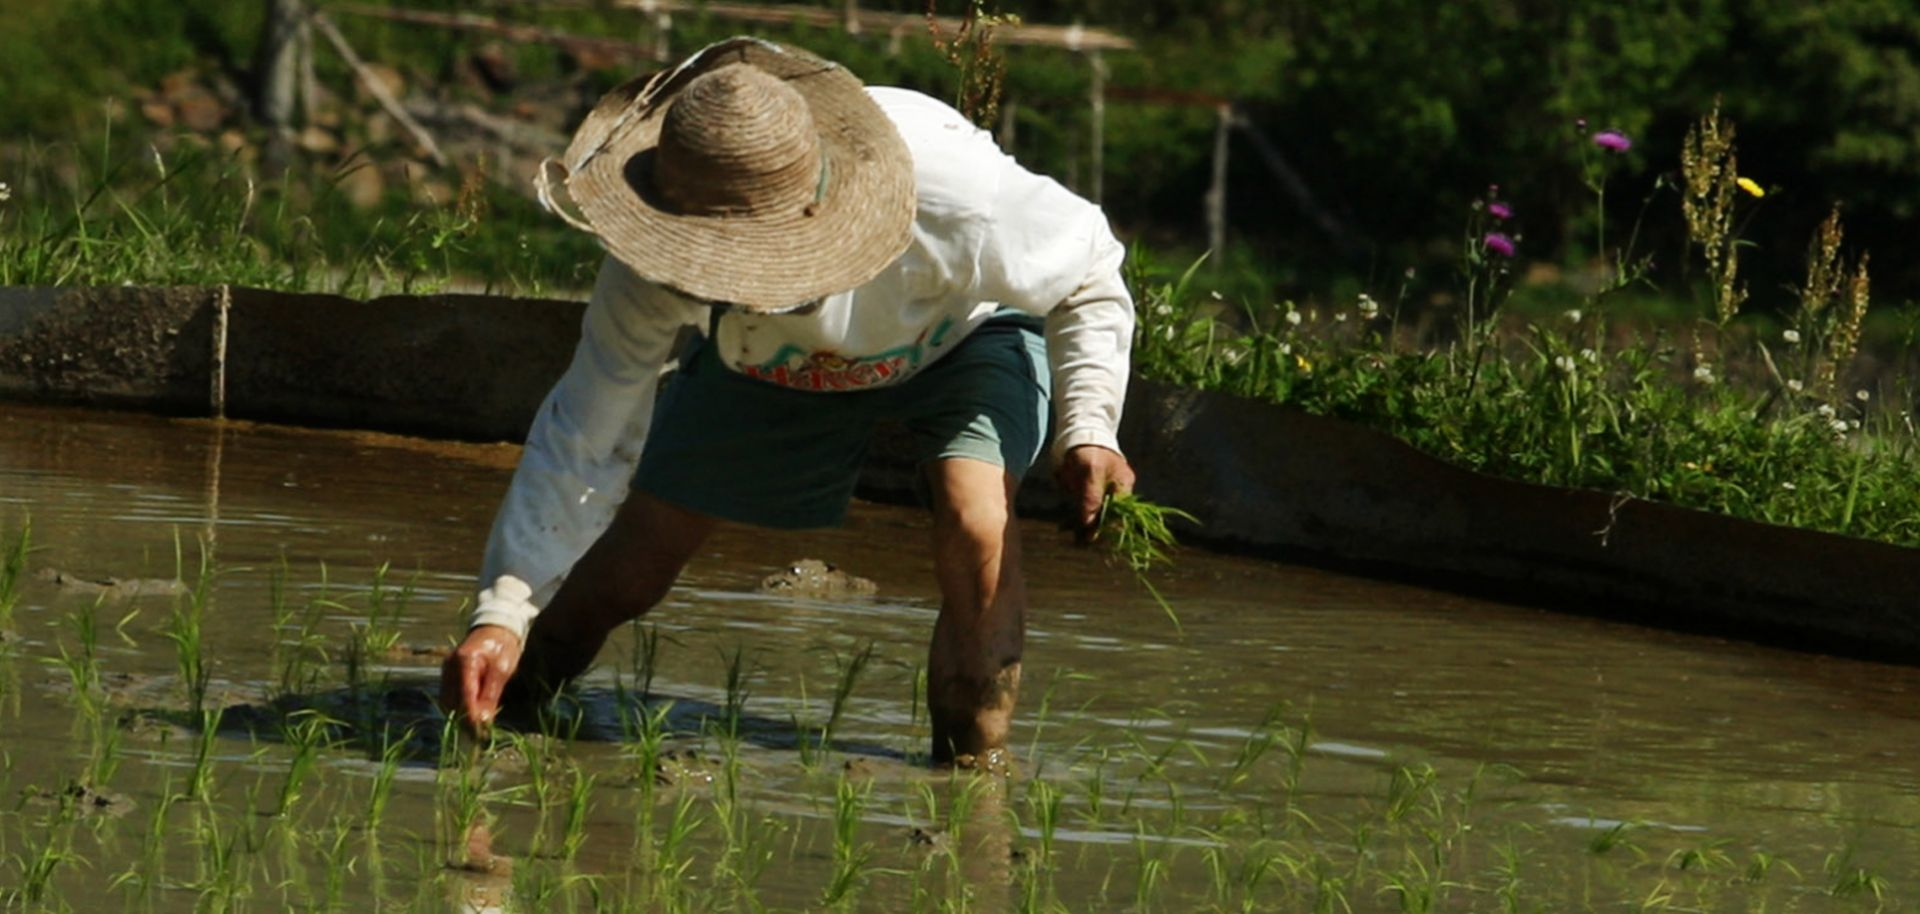 A Japanese farmer plants rice seed at Tawa rice terrace in Sayo, Hyogo prefecture, Japan.